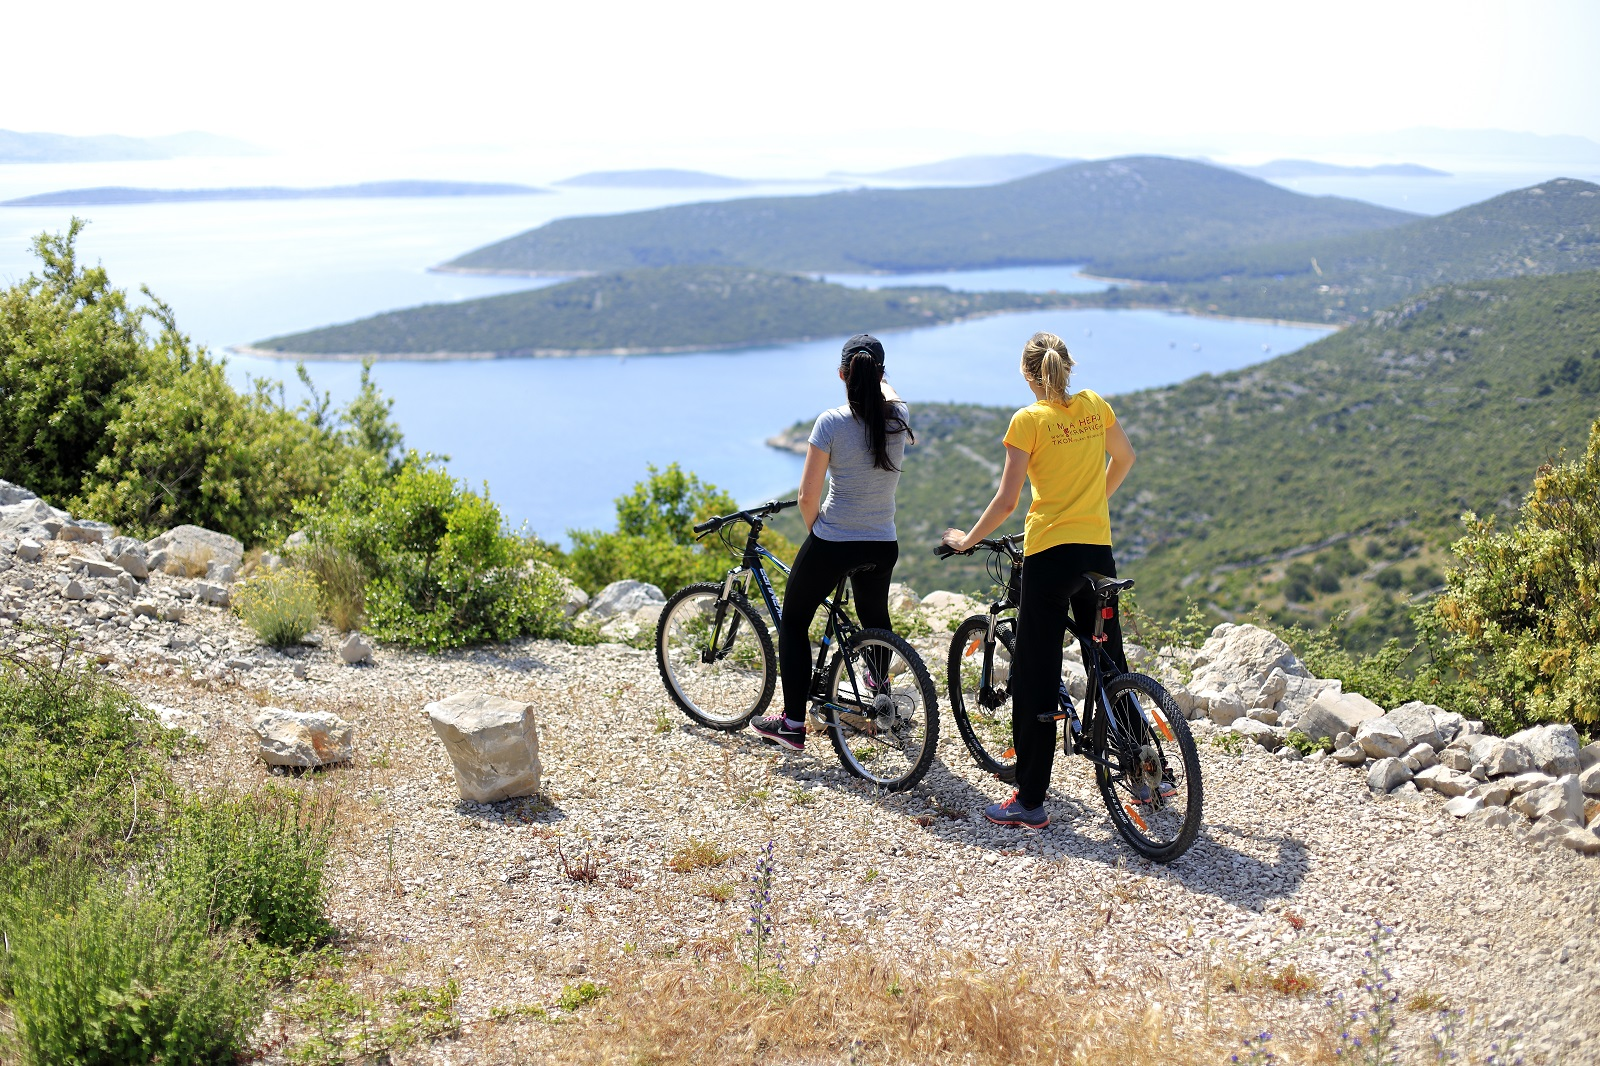 Sail, cycle, swimming, excursions, activity trips, Croatia, Island of Pasman